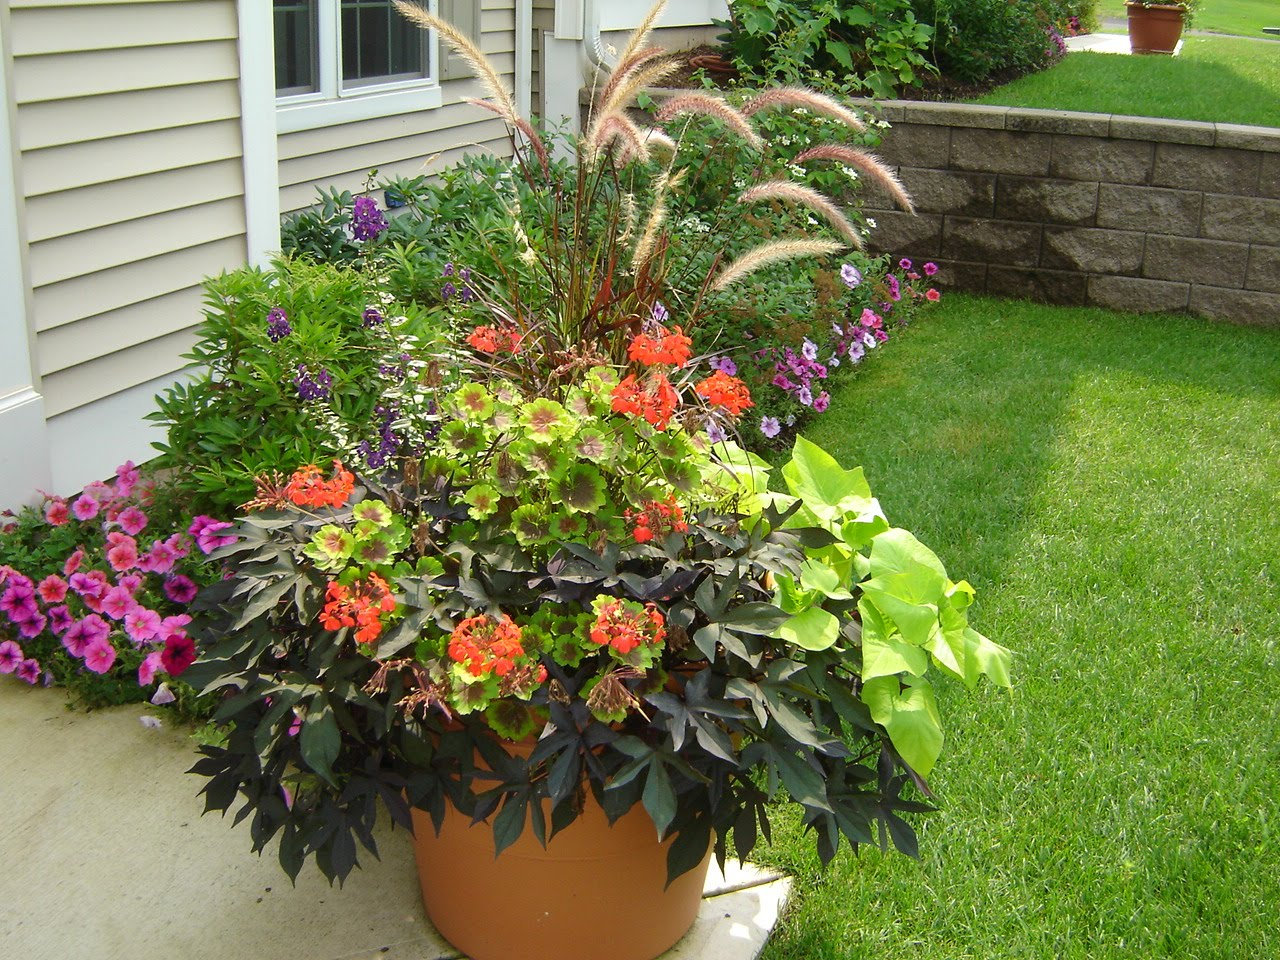 The groundskeeper inc container gardens - Container gardening ...